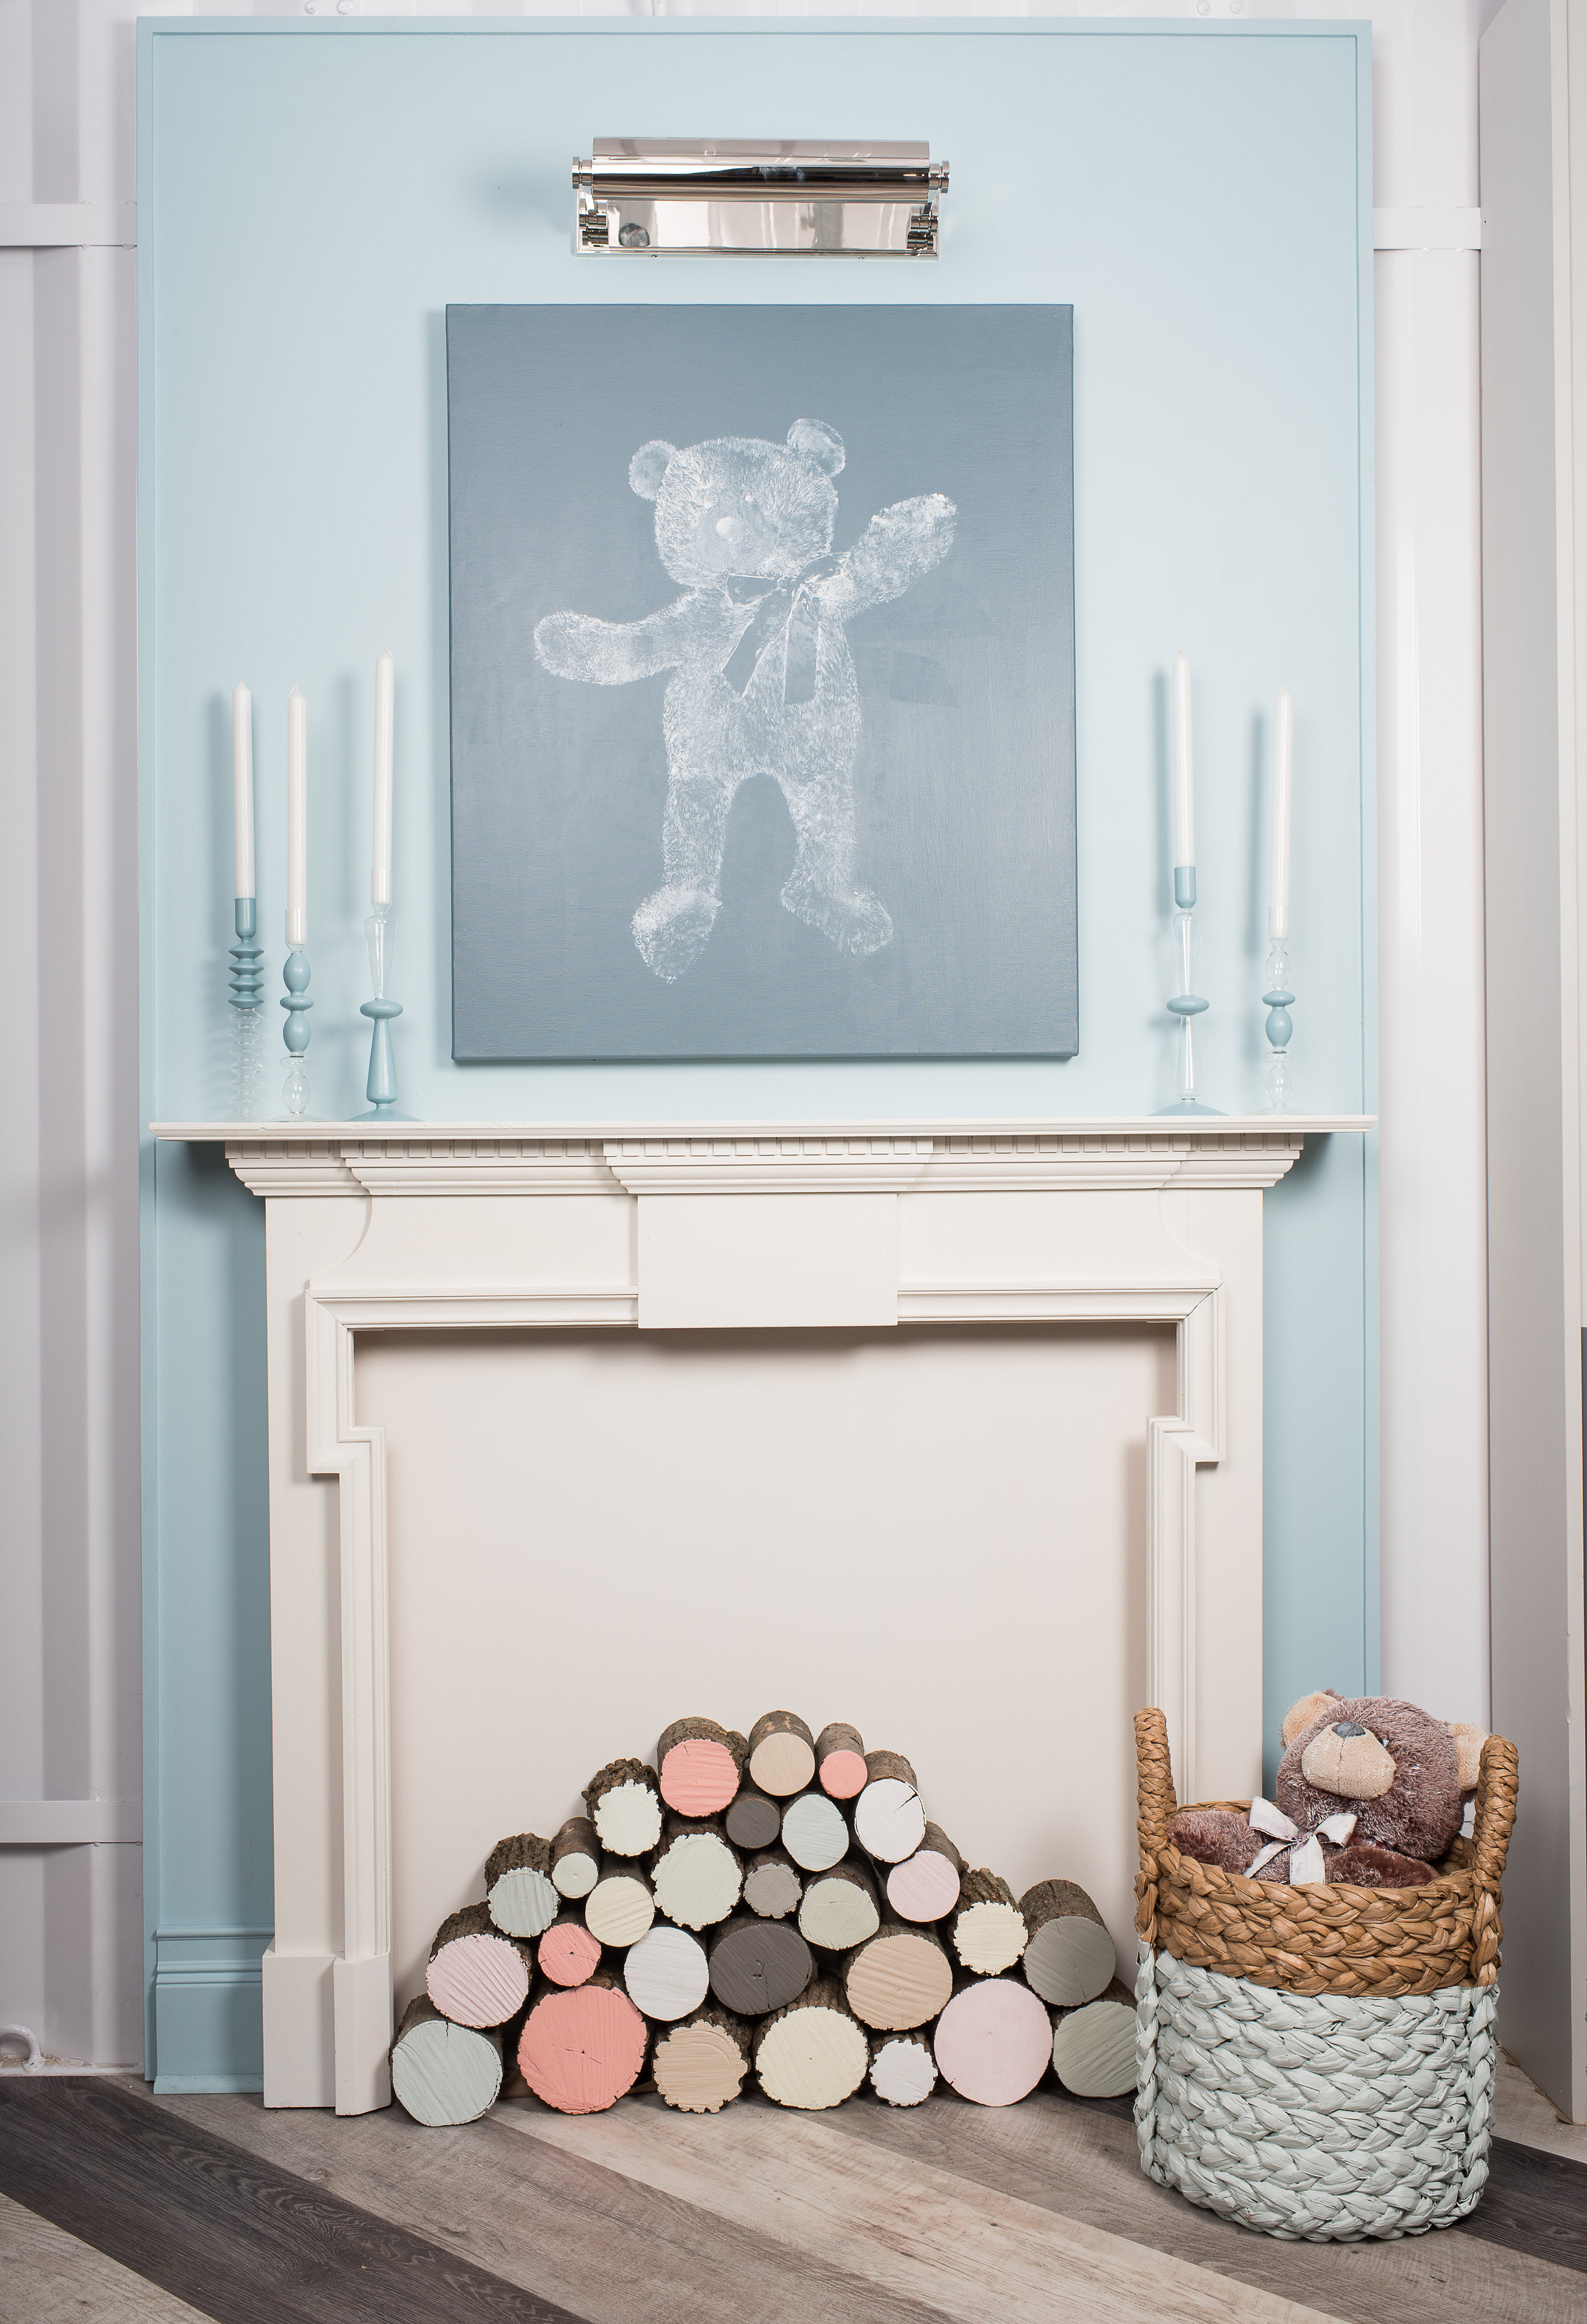 Teddy Bear - Fire Place